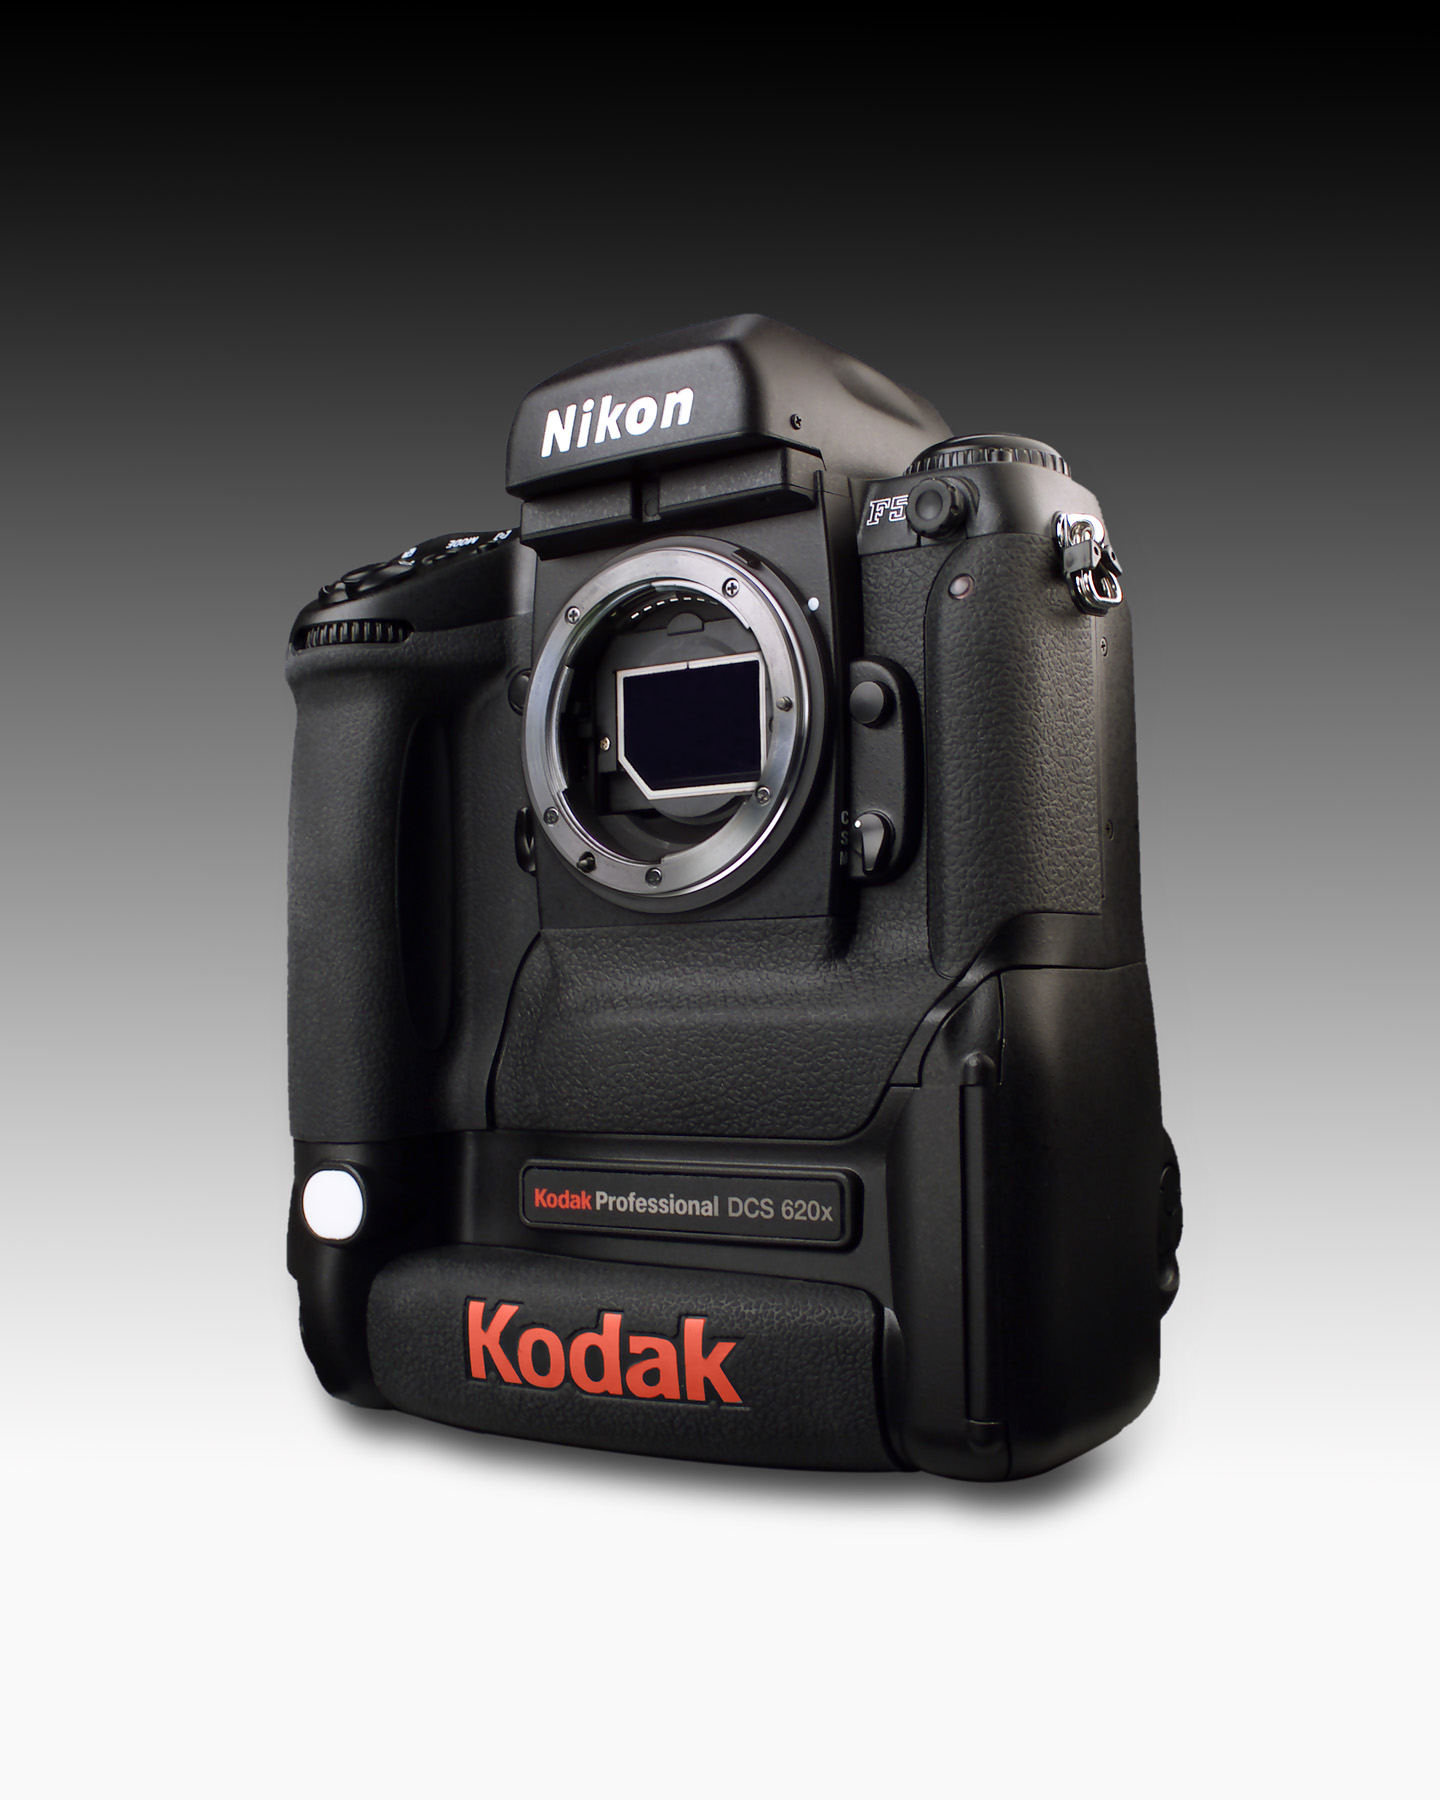 News Digital Cameras Imaging Photography Caigcircuitwriterpen Click Image To See Larger View Kodak Dcs 620x Front For A Bigger Picture